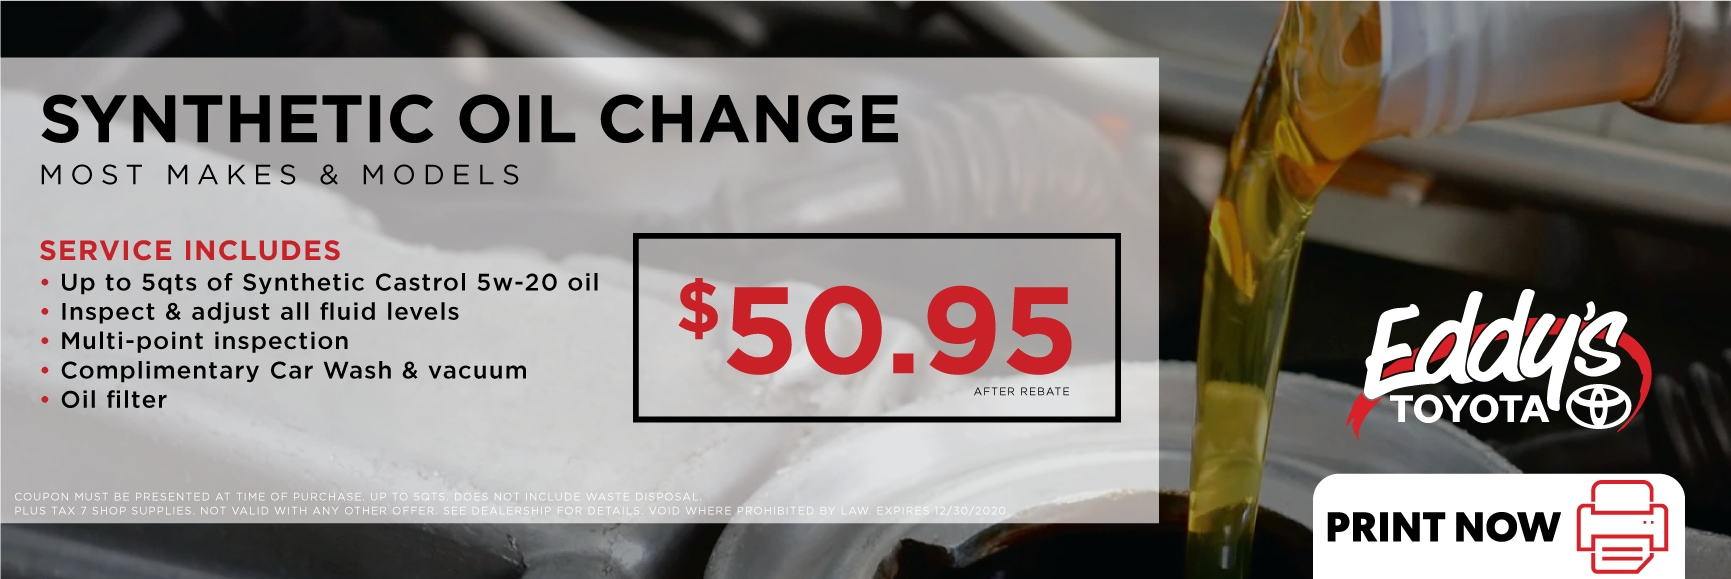 Toyota Synthetic Oil Change Coupon >> Toyota Synthetic Oil Change Service Coupon Wichita Derby Car